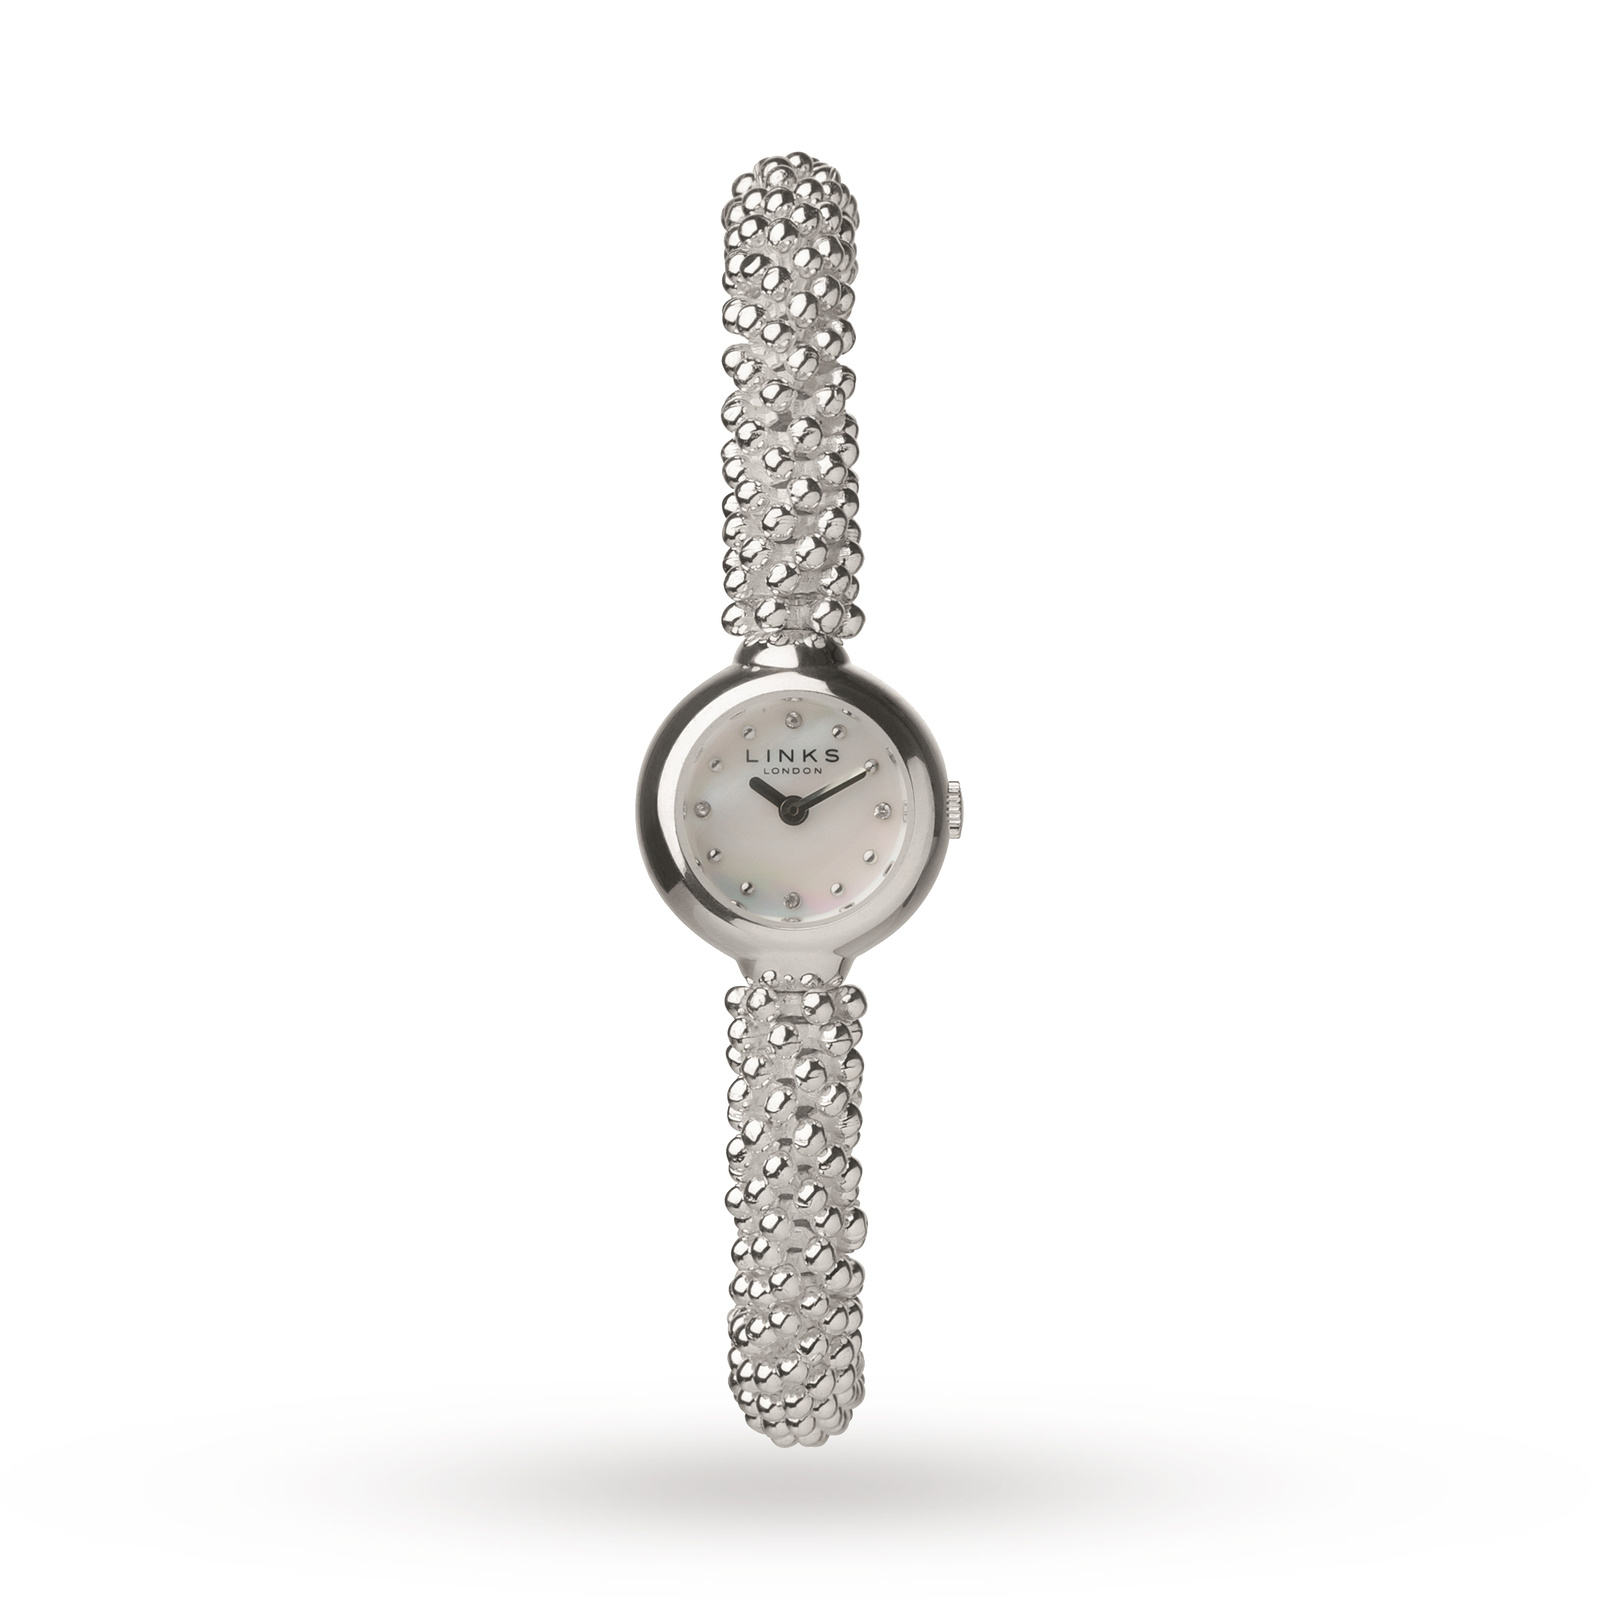 Links Of London Ladies' Effervescence Watch